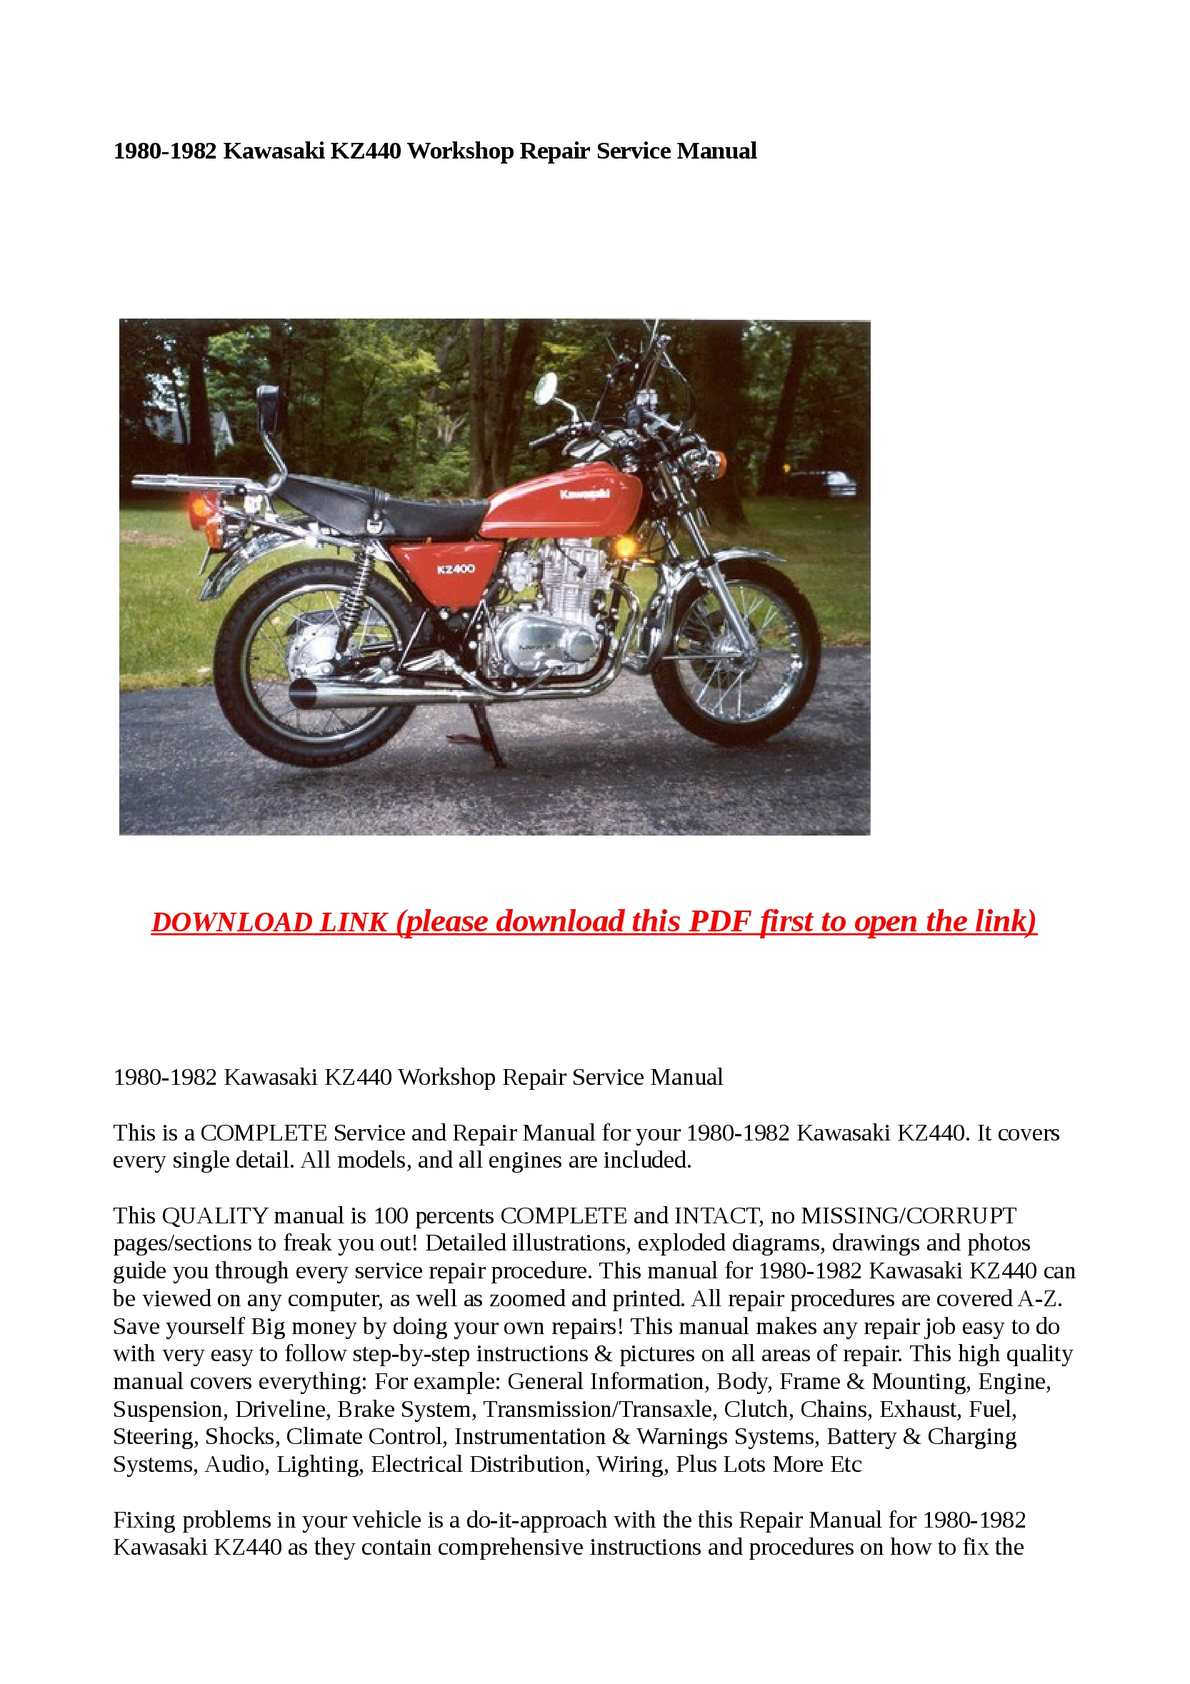 p1 calam�o 1980 1982 kawasaki kz440 workshop repair service manual 1980 Kawasaki KZ750 Wiring-Diagram at webbmarketing.co